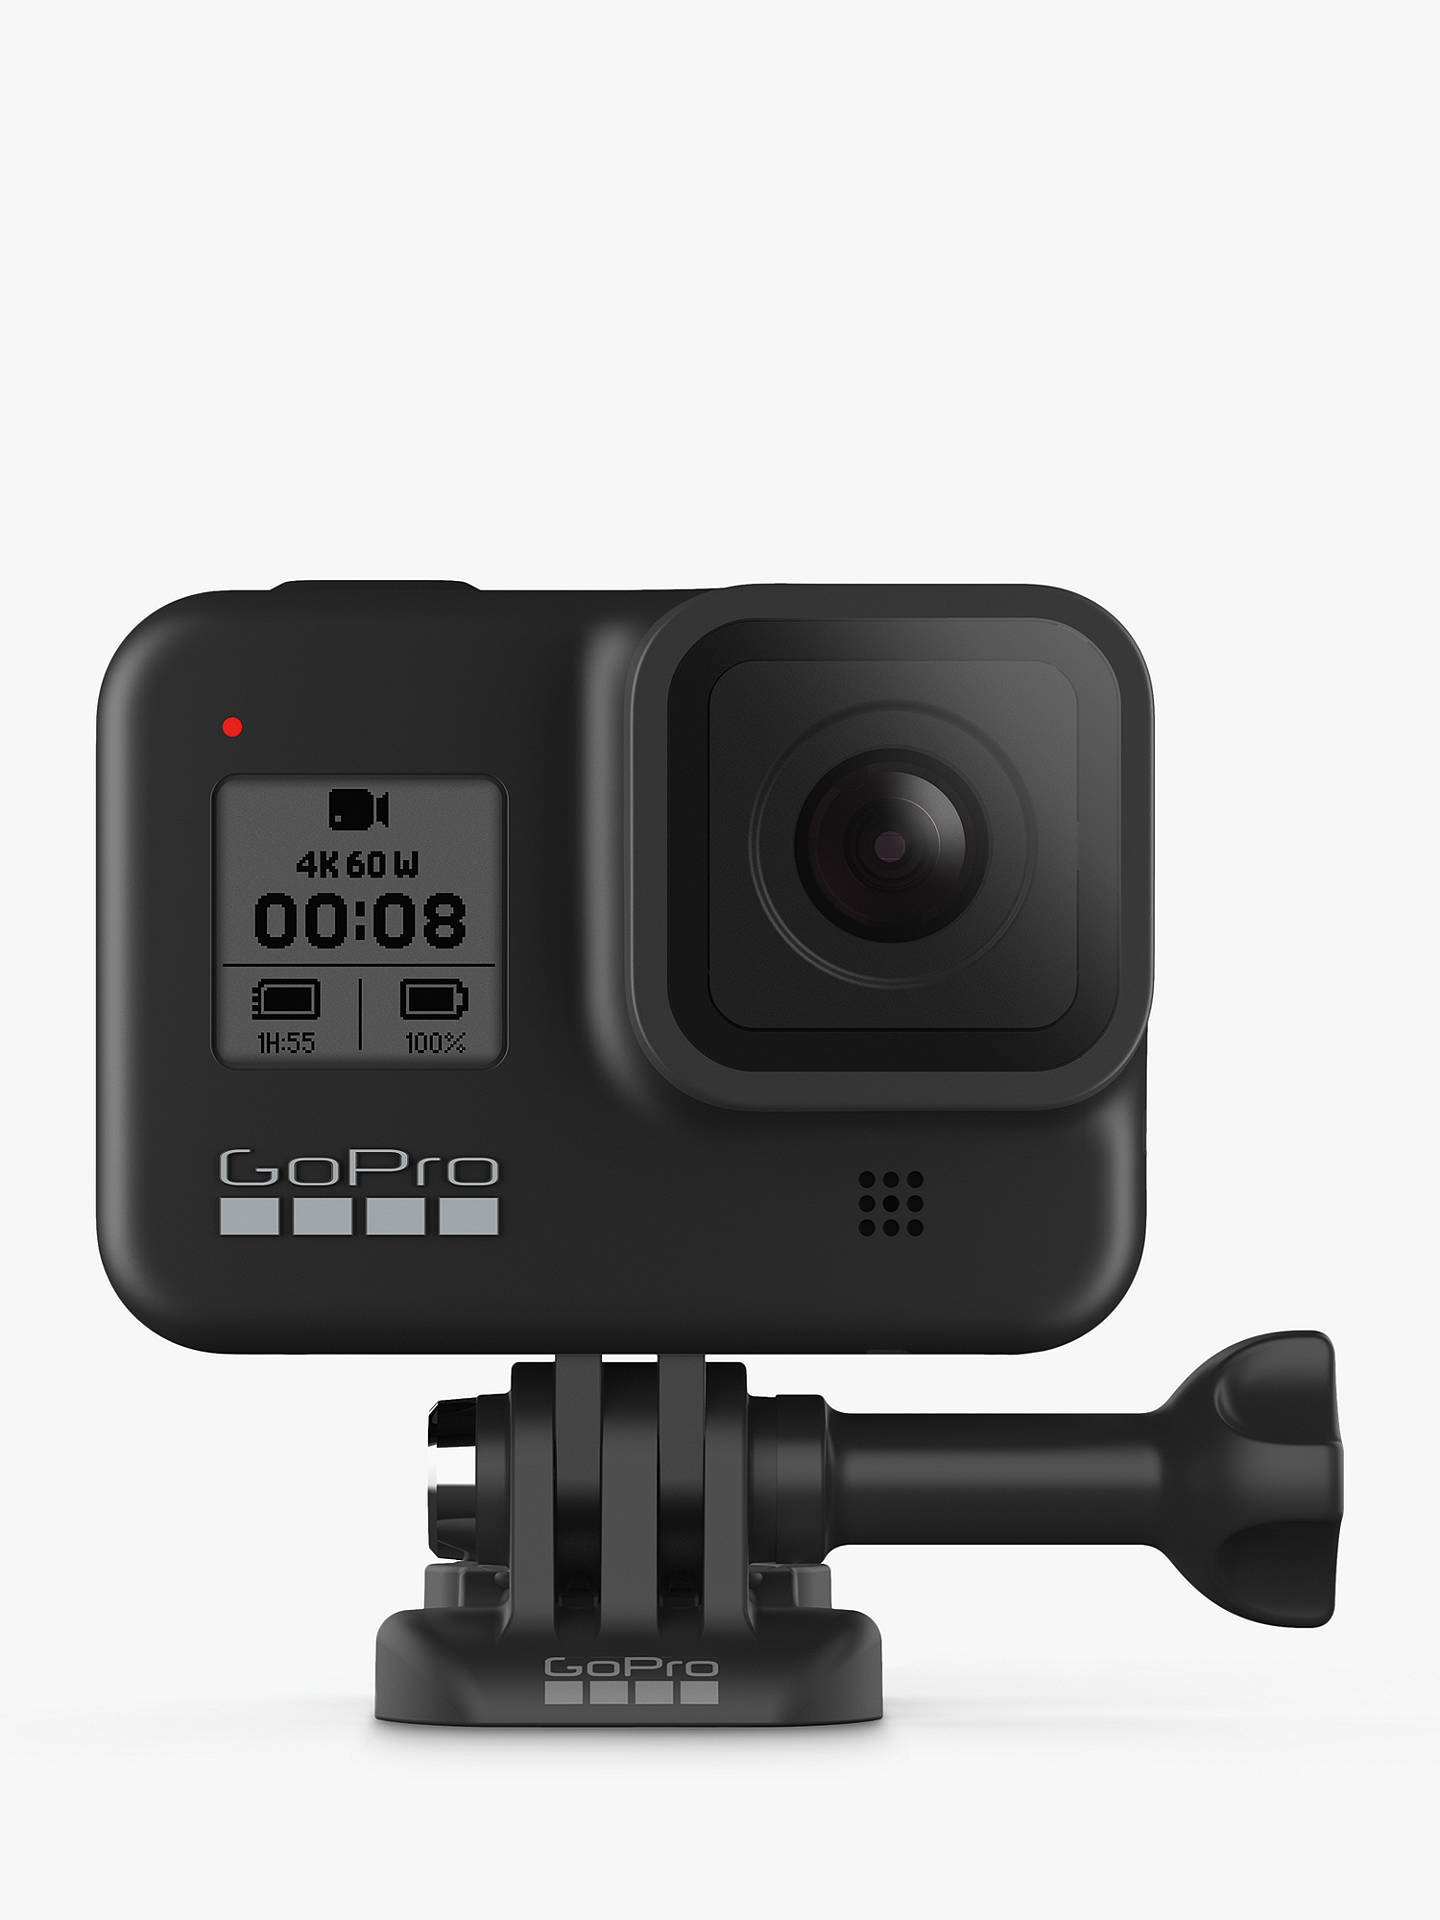 Buy GoPro HERO8 Black Camcorder, 4K Ultra HD, 60 FPS, 12MP, Wi-Fi, Waterproof, GPS, Bundle with Shorty Grip, Head Strap Mount, SD Card & Additional Battery Online at johnlewis.com